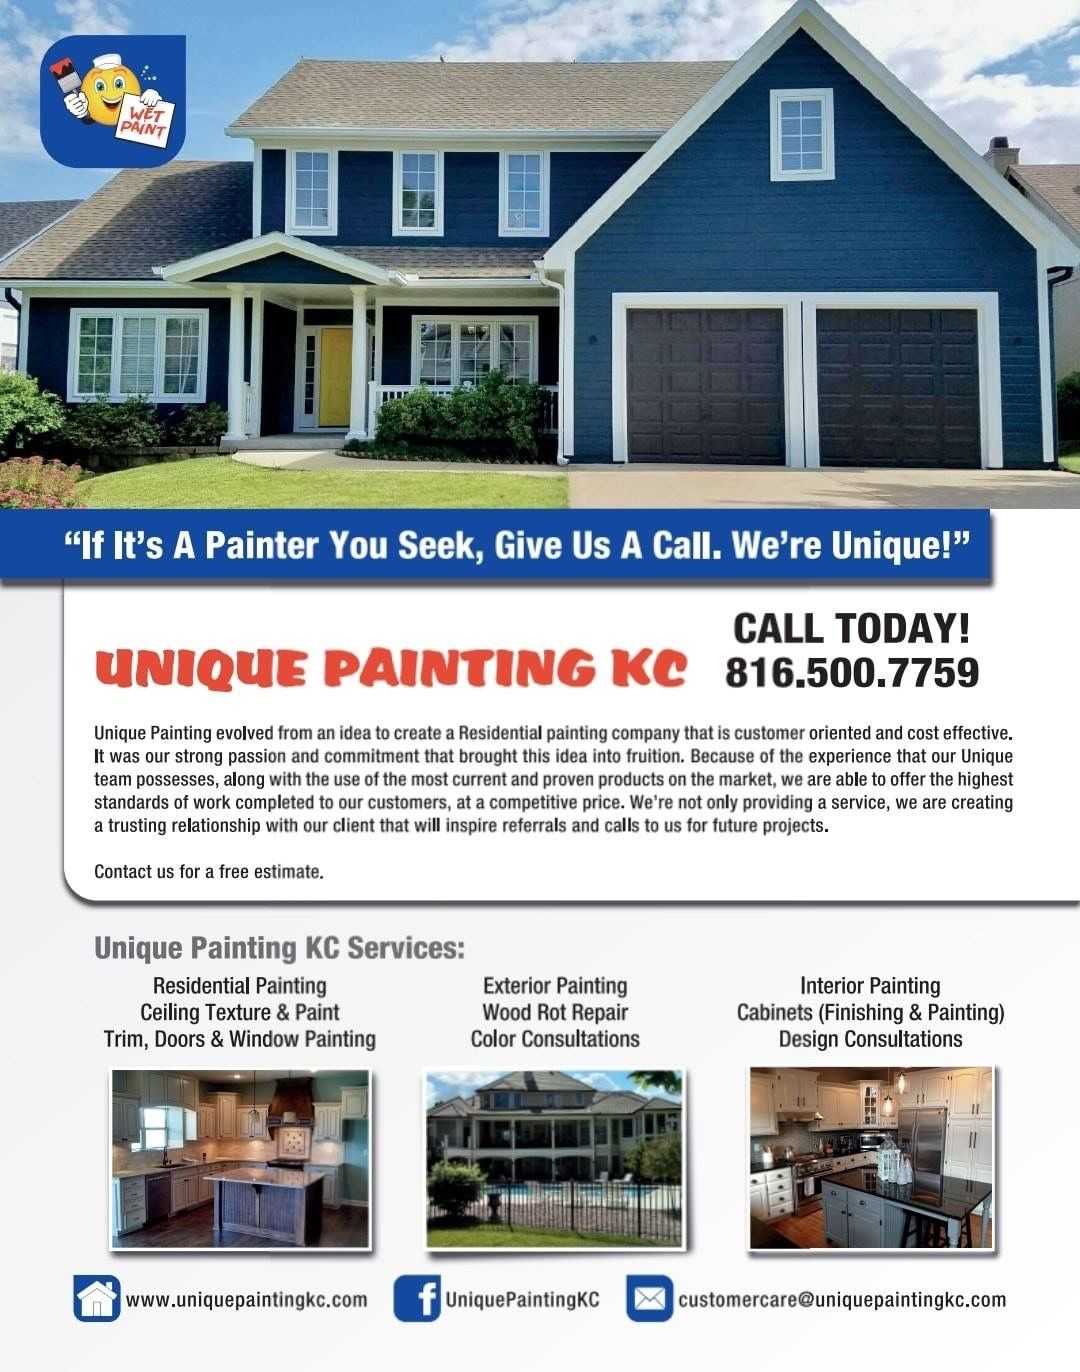 We Are Unique Painting Kc If It S A Painter You Seek Give Us A Call We Re Unique Interior Design Consultation Exterior Paint Design Consultant